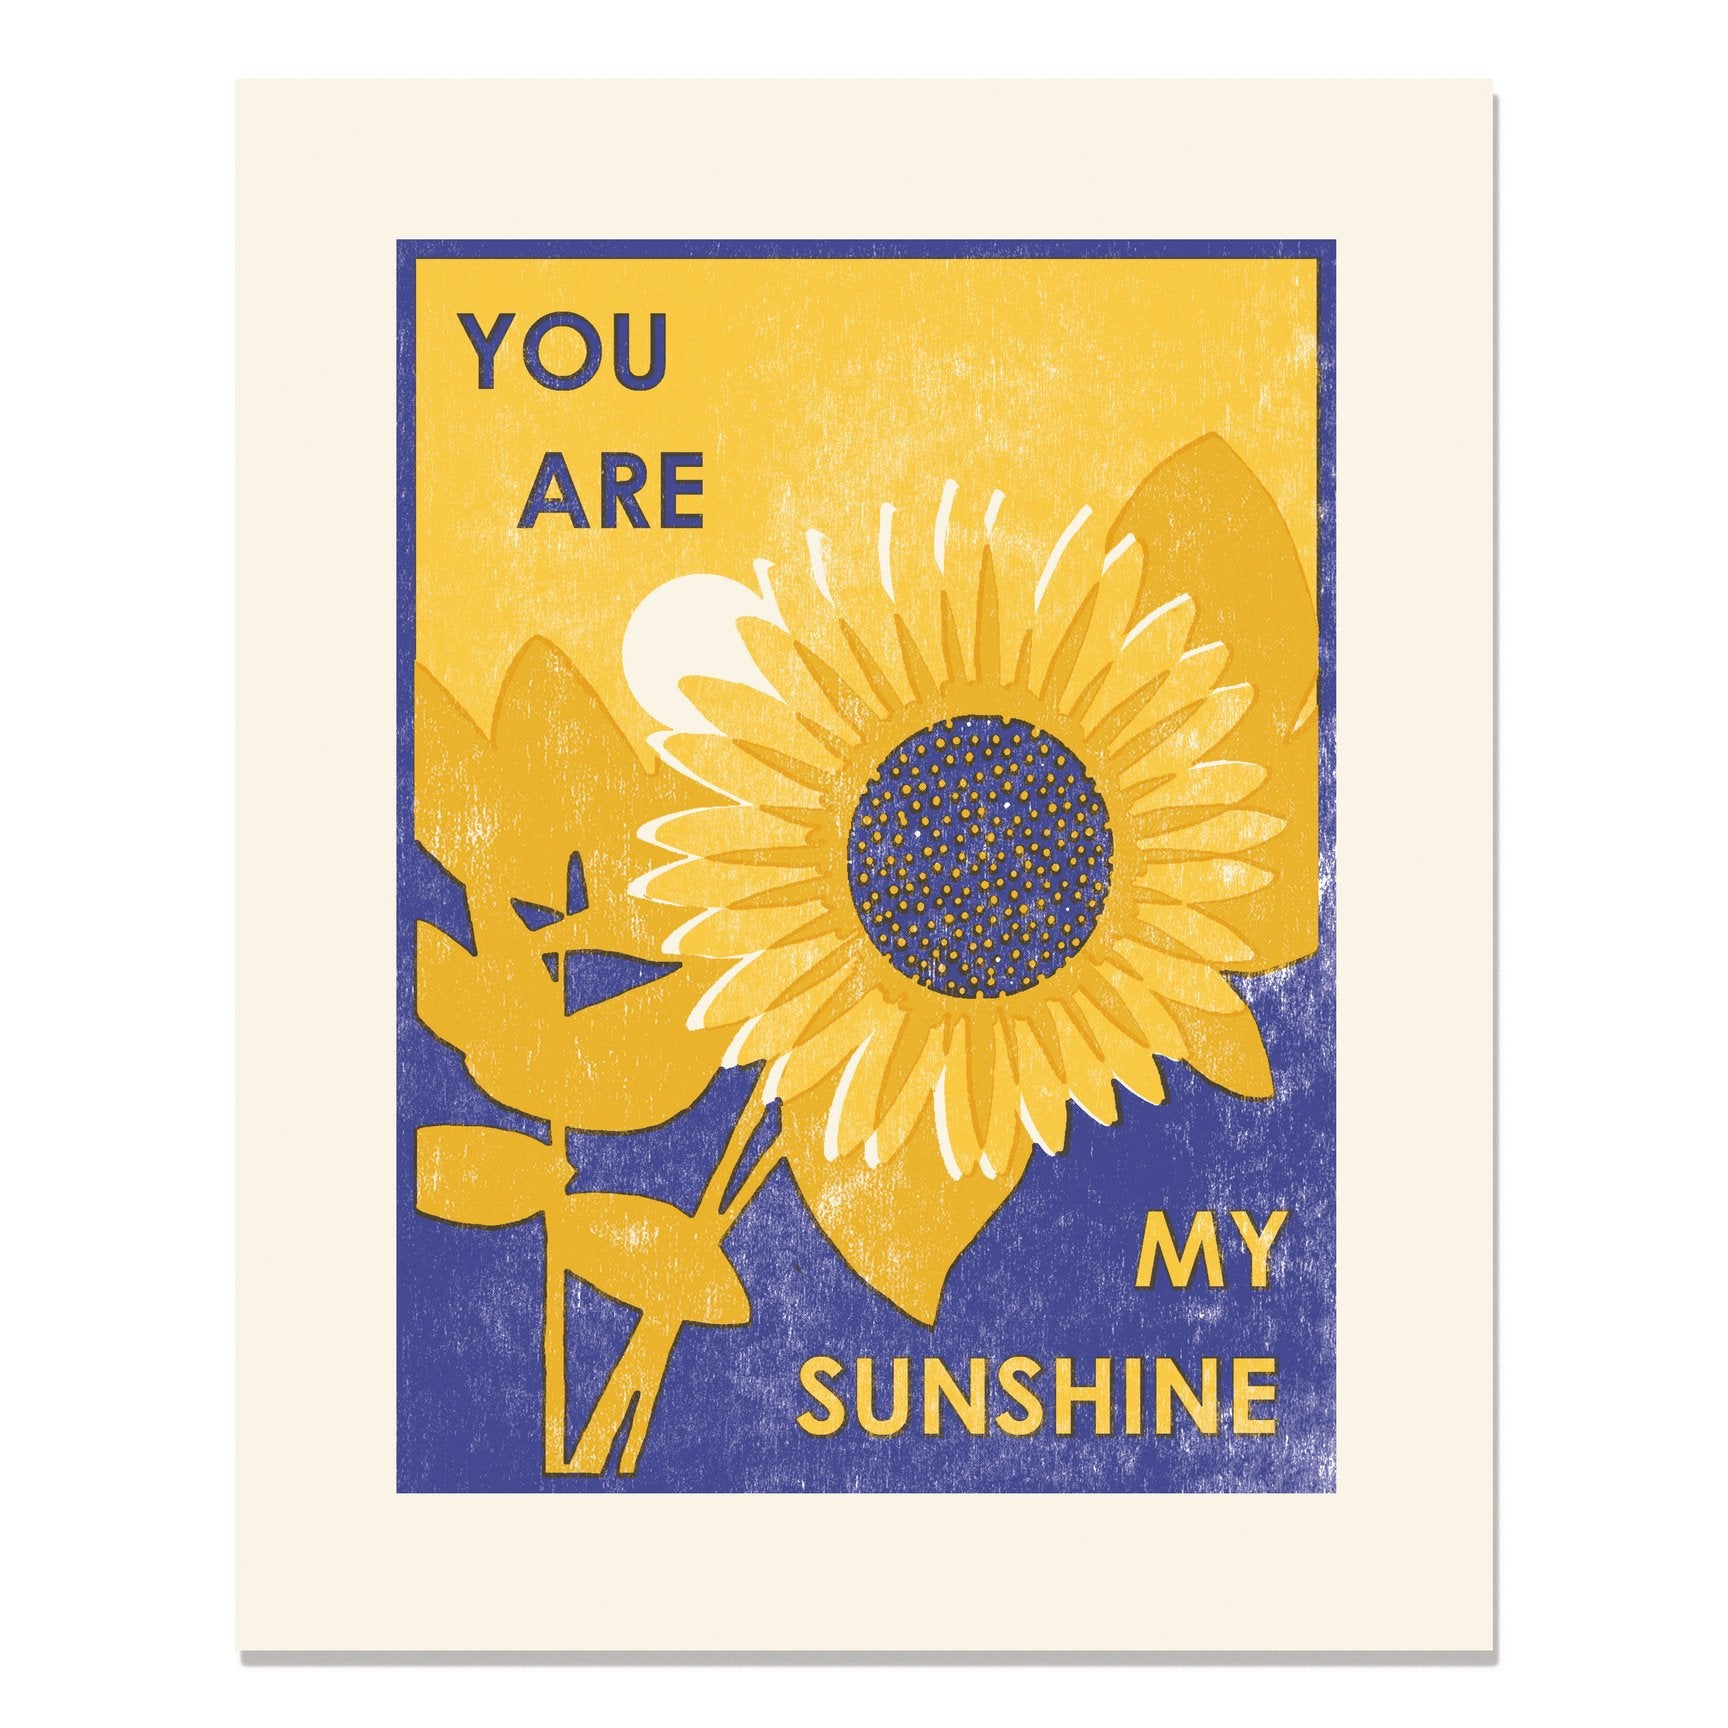 My Sunshine Print 8x10, Heartell Press